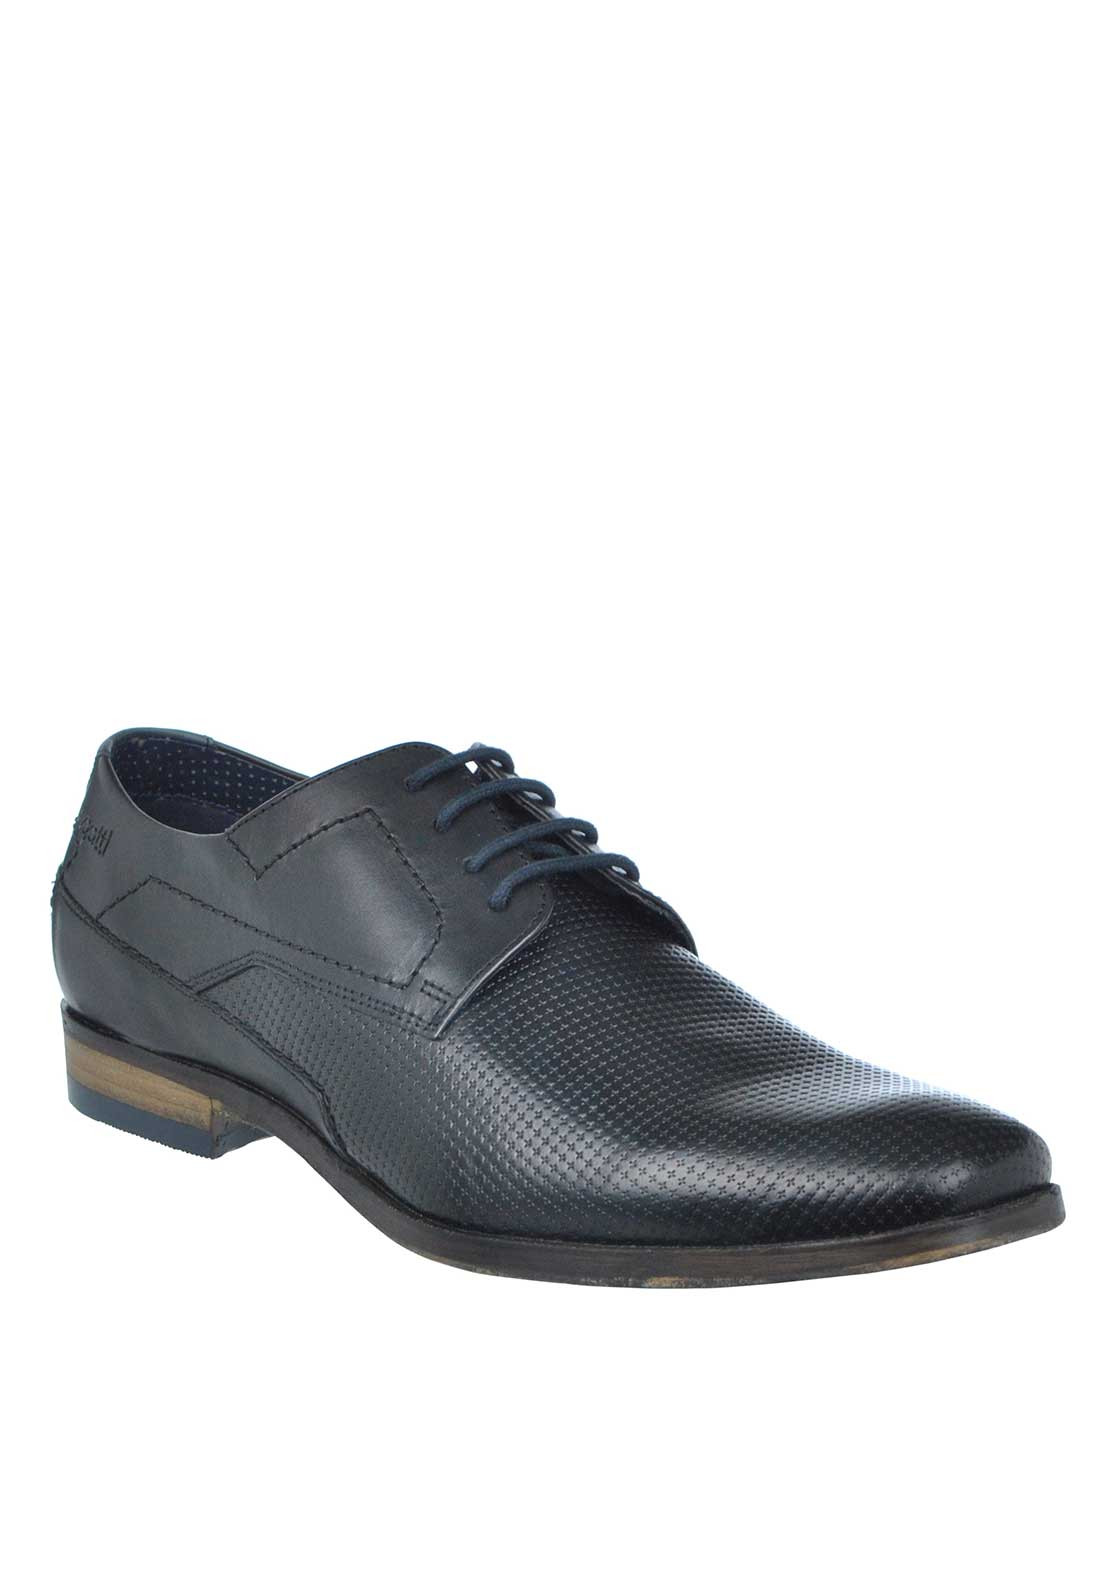 Bugatti Embossed Leather Lace Up Shoe, Black